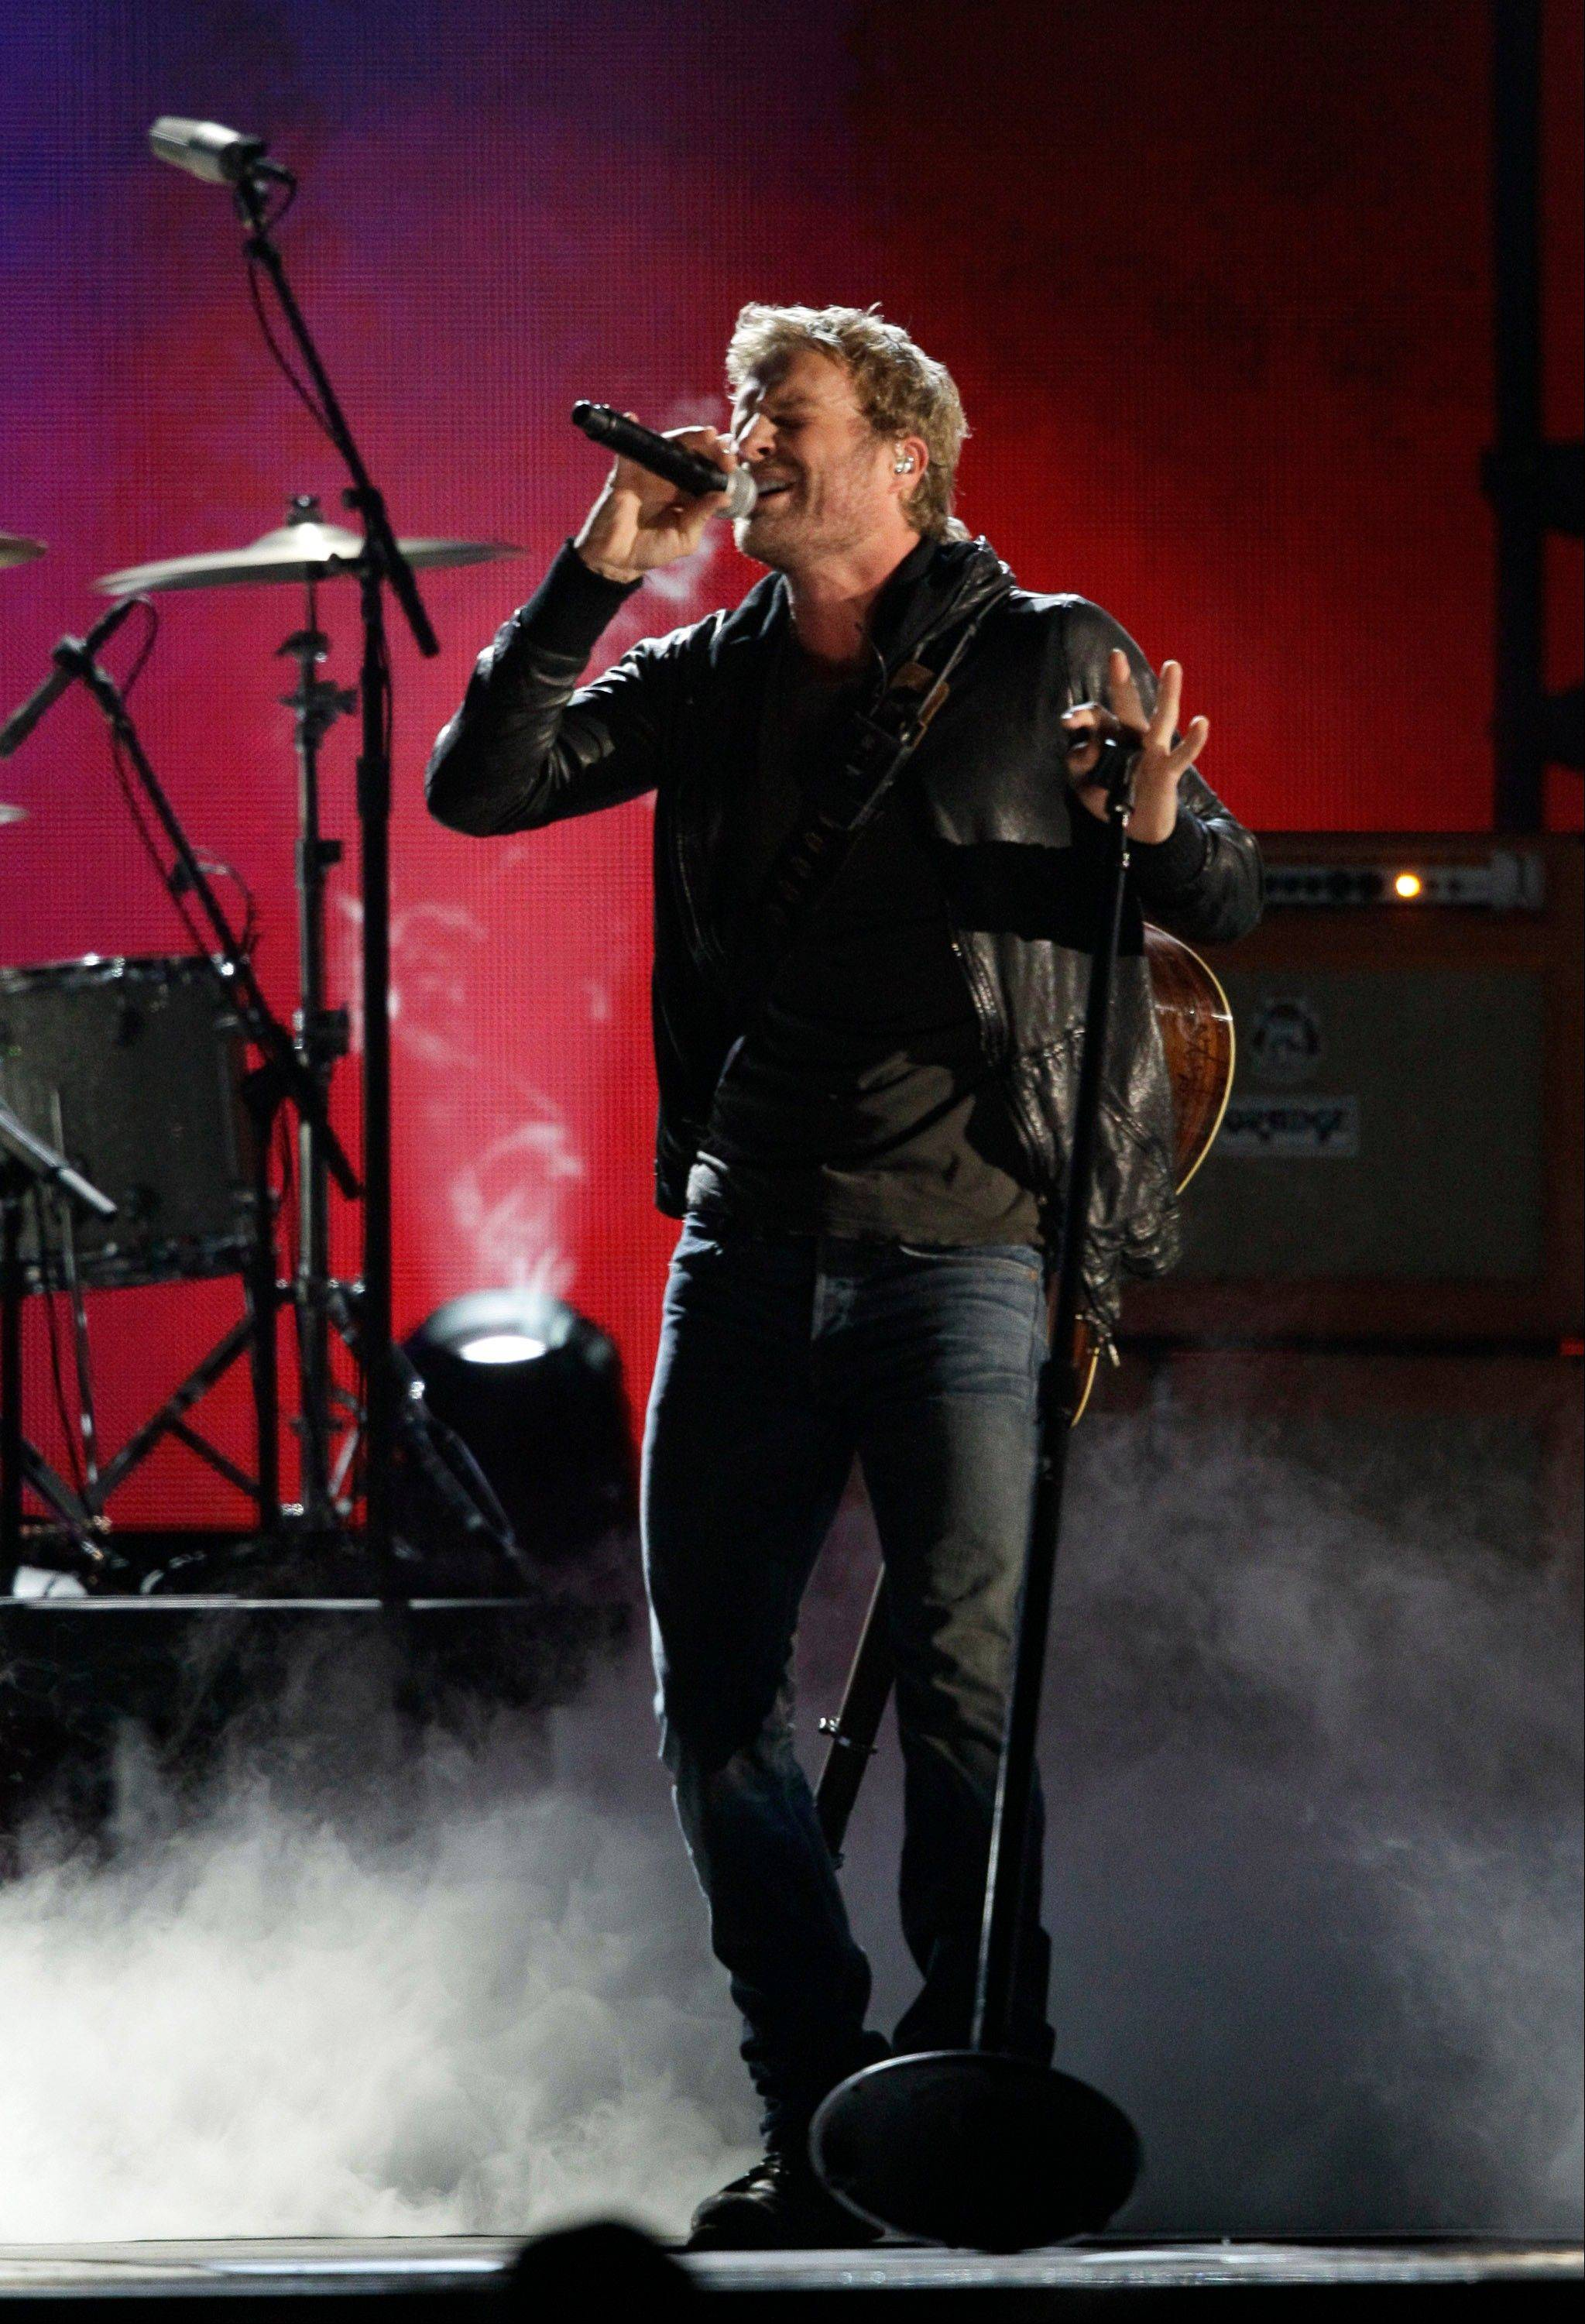 Dierks Bentley at the 46th Annual Country Music Awards at the Bridgestone Arena on Thursday, Nov. 1, 2012, in Nashville, Tenn.